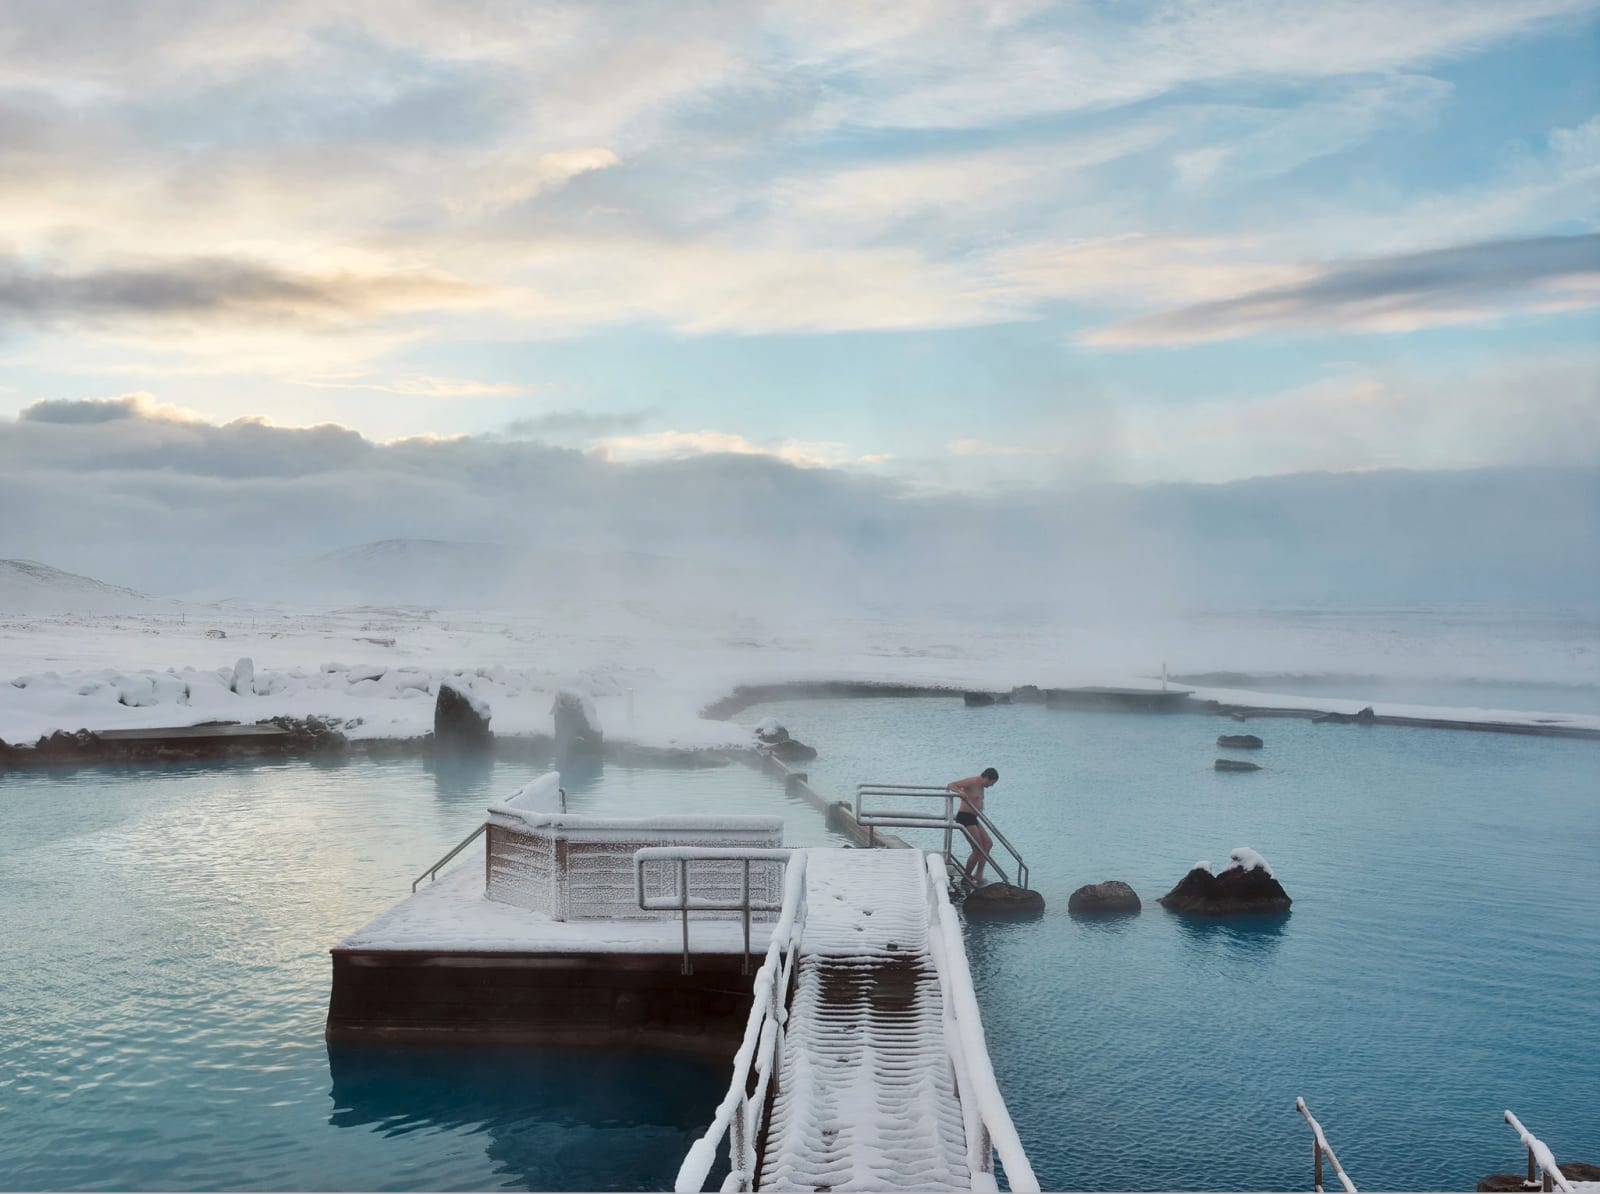 Lone figure stepping into hot pools in Iceland at Myvatn Nature Baths, by Massimo Vitali